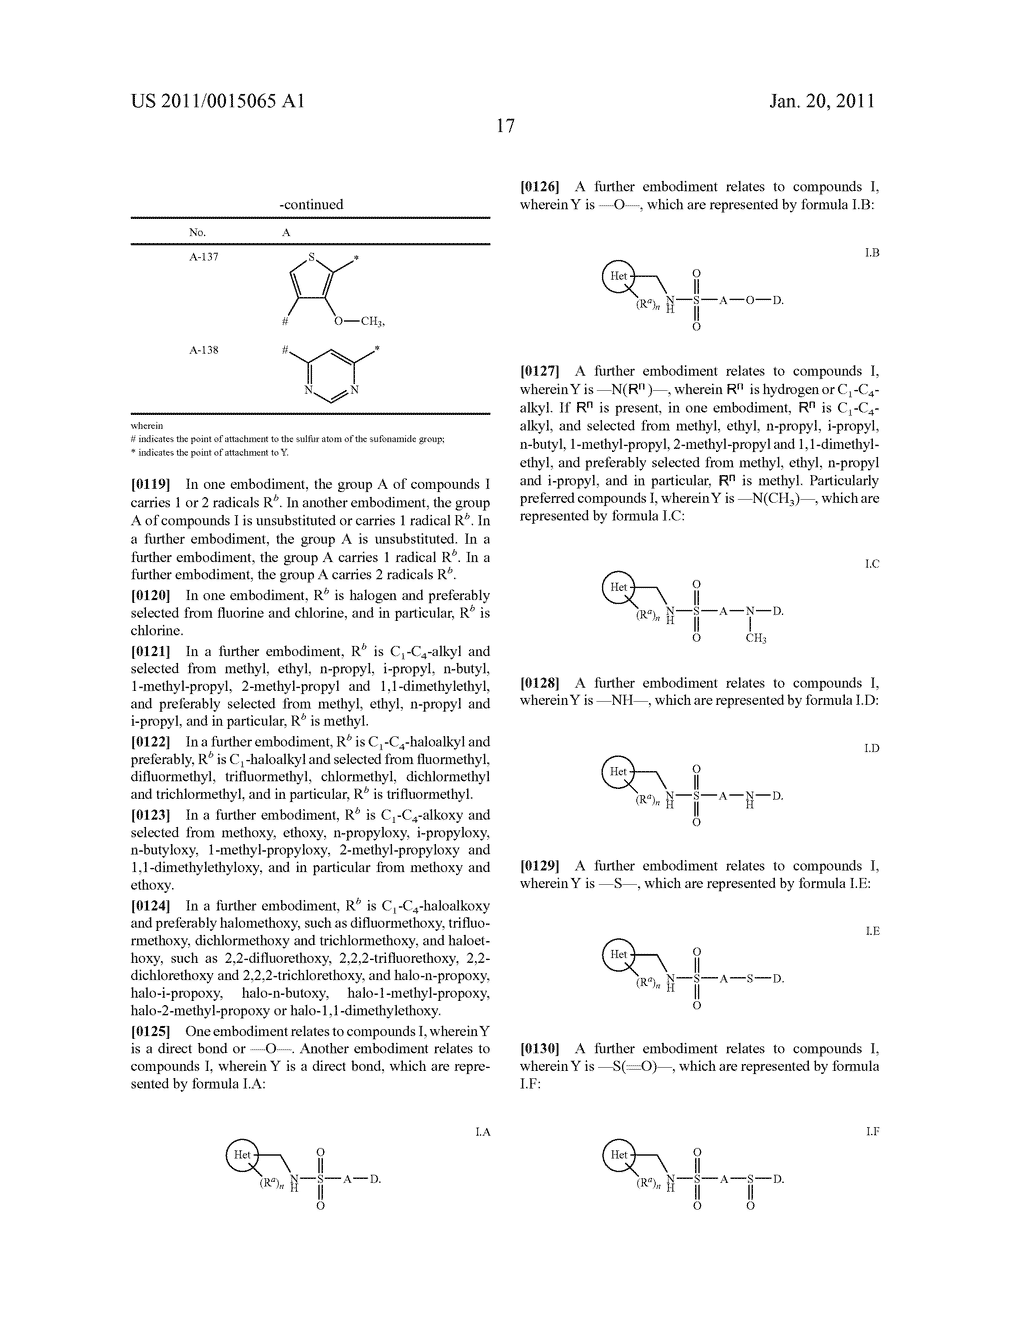 Substituted Sulfonic Acid Amide Compounds - diagram, schematic, and image 18